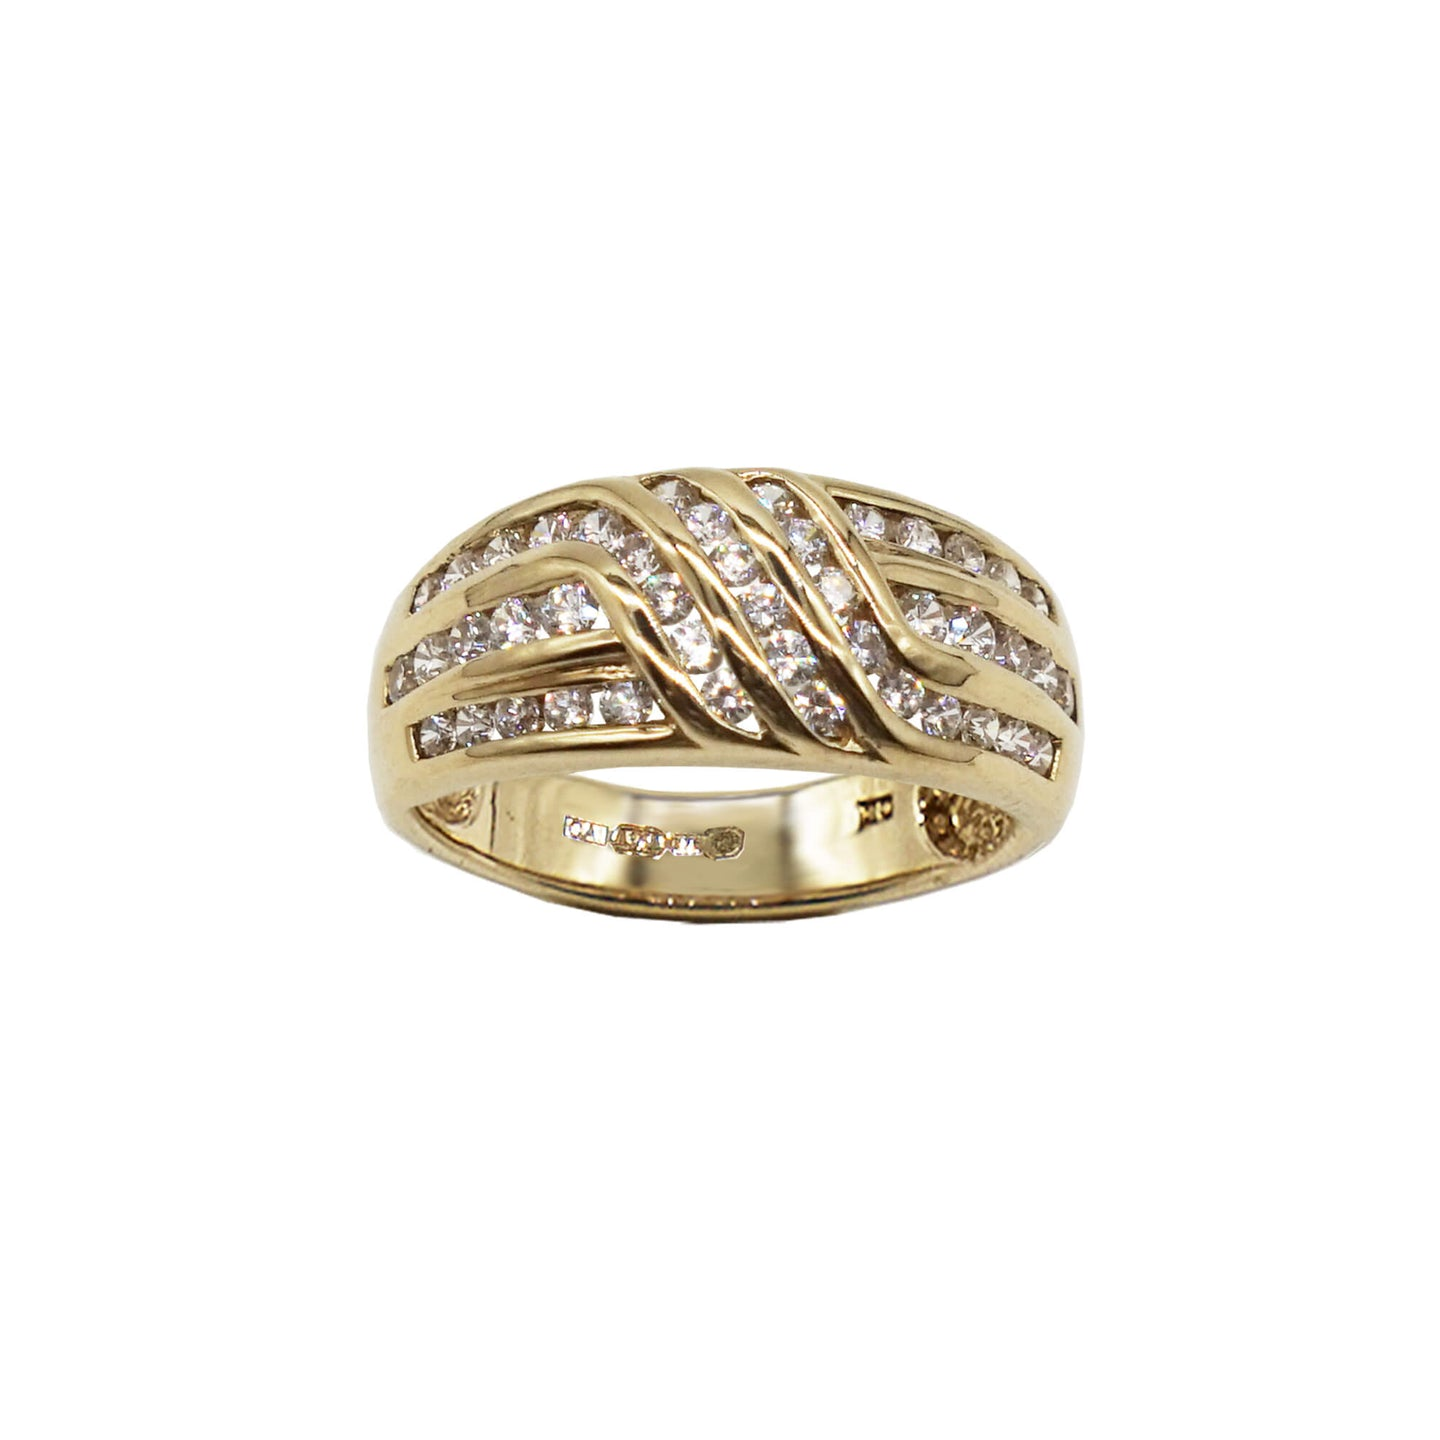 Vintage 9K Gold Ring- Swirl bar design with clear stone set. White background.